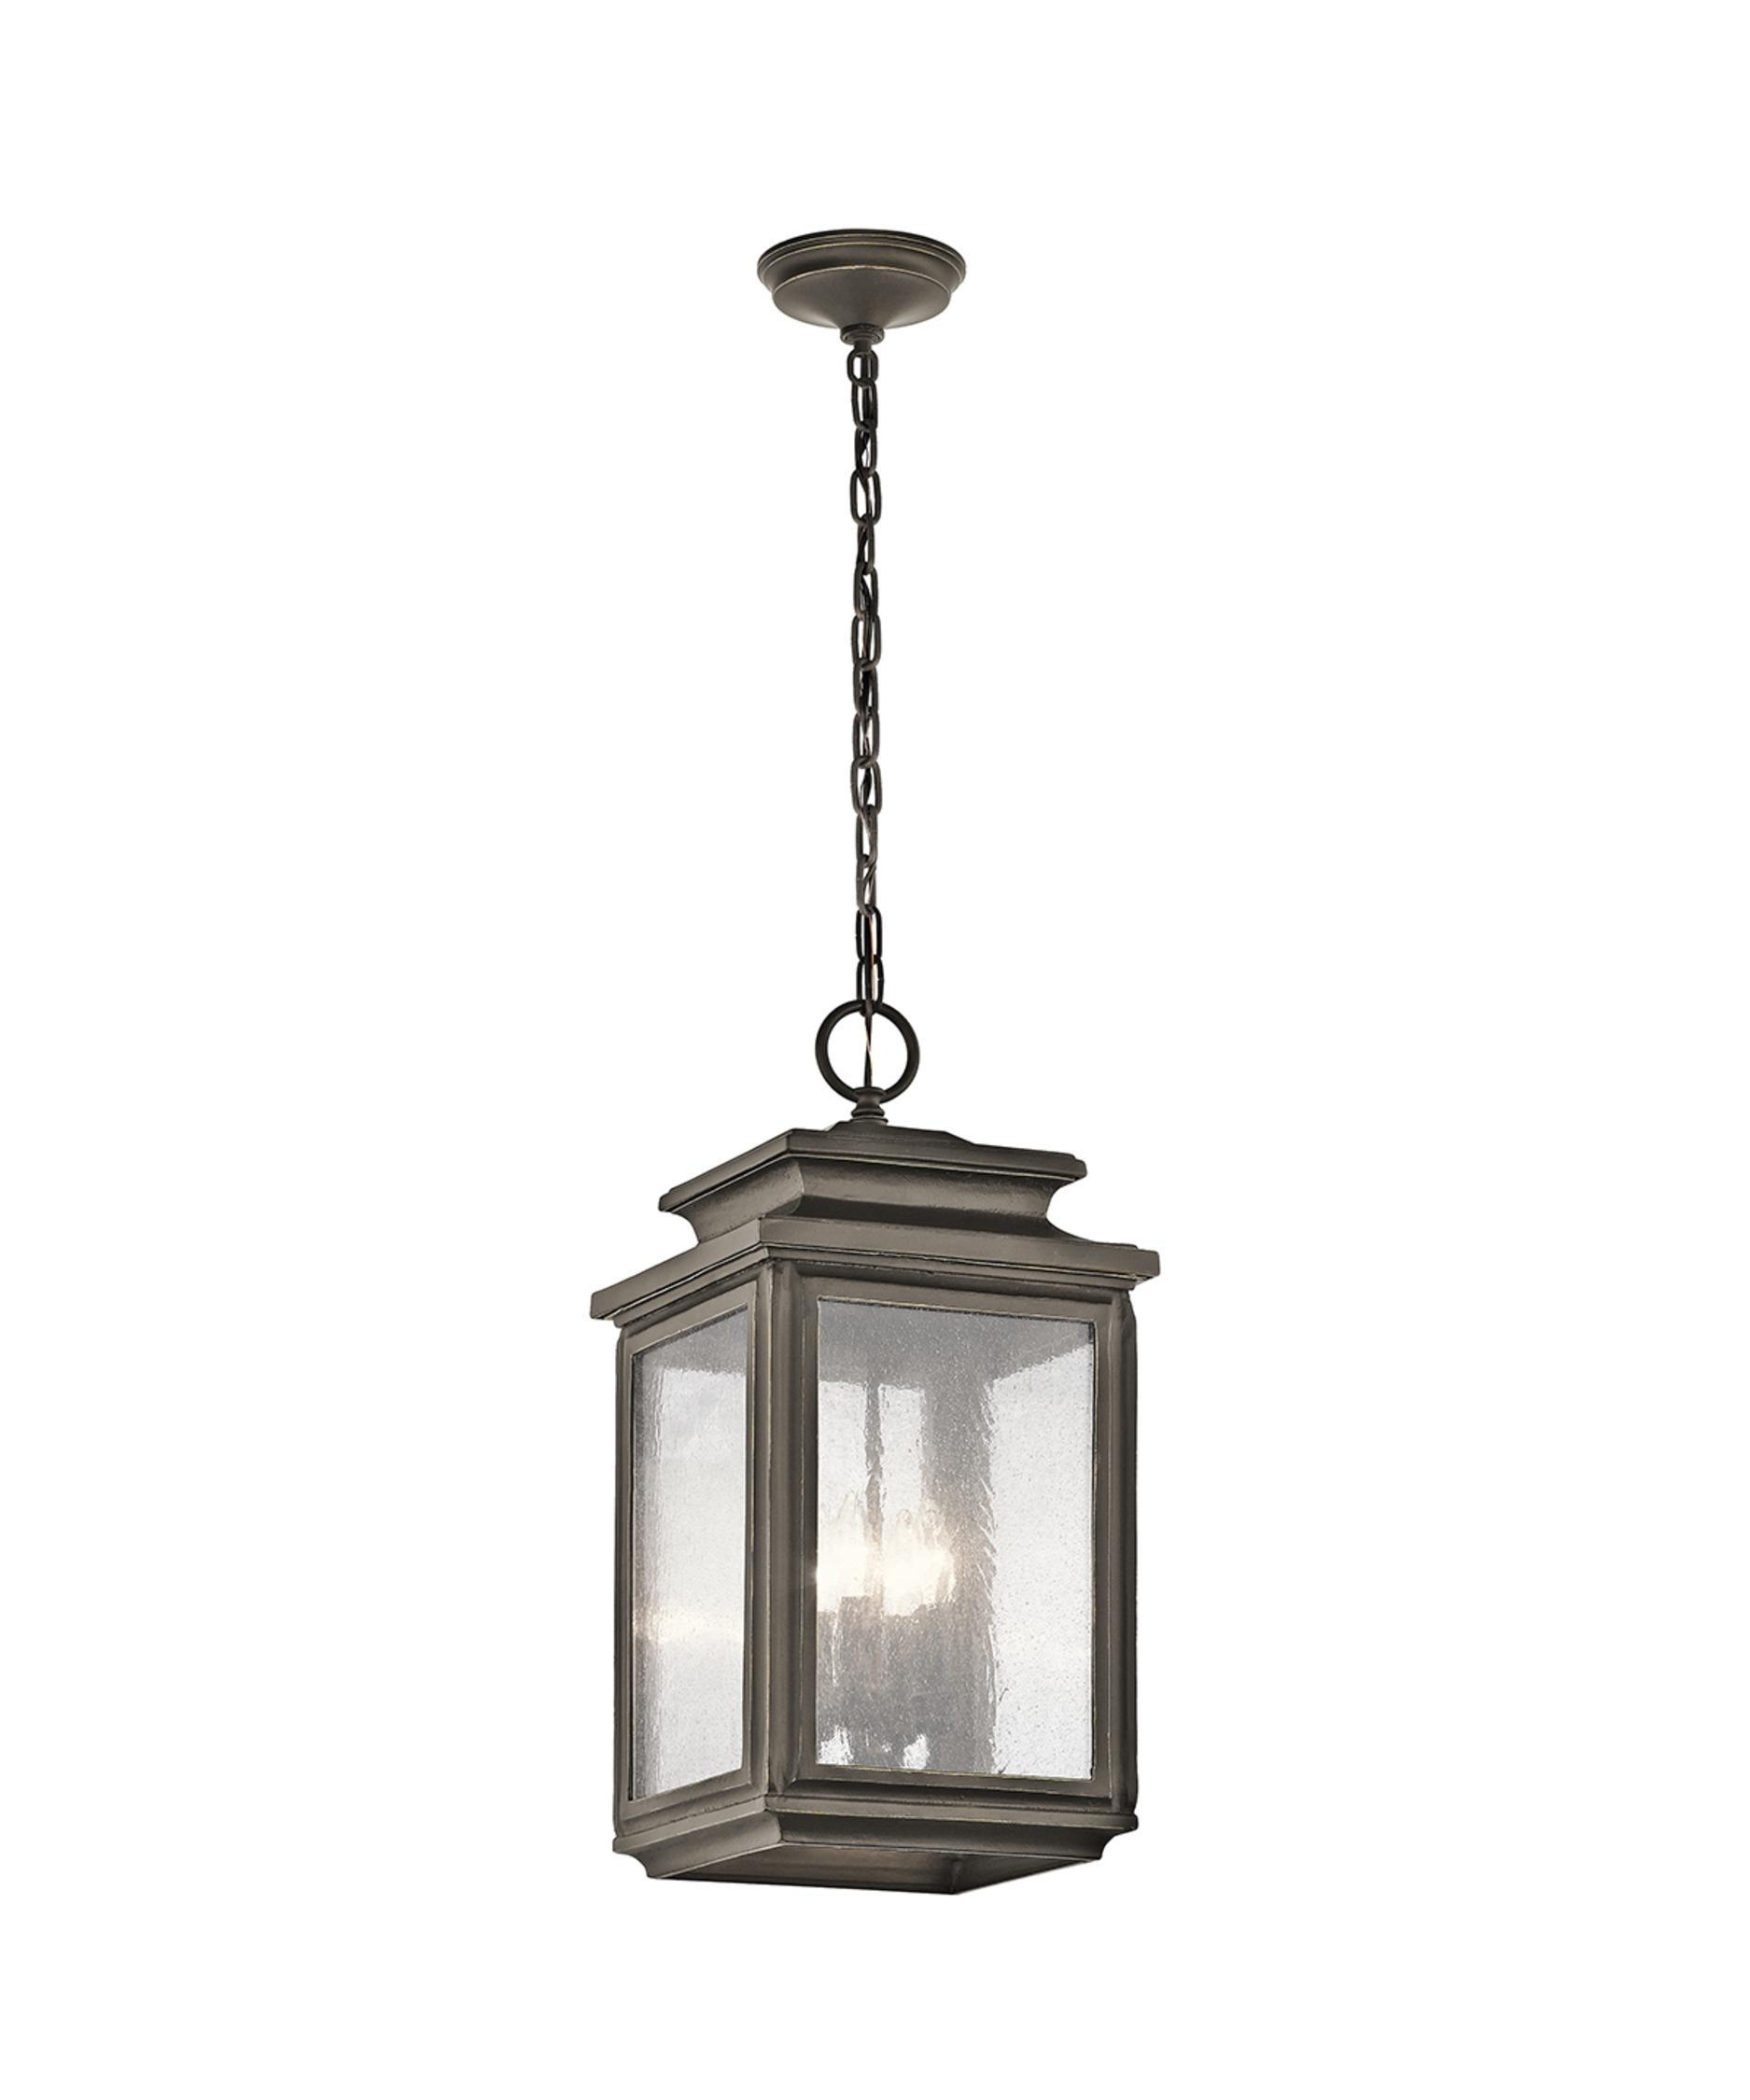 Kichler 49505 Wiscombe Park 11 Inch Wide 4 Light Outdoor Hanging Pertaining To Kichler Outdoor Lanterns (Photo 19 of 20)